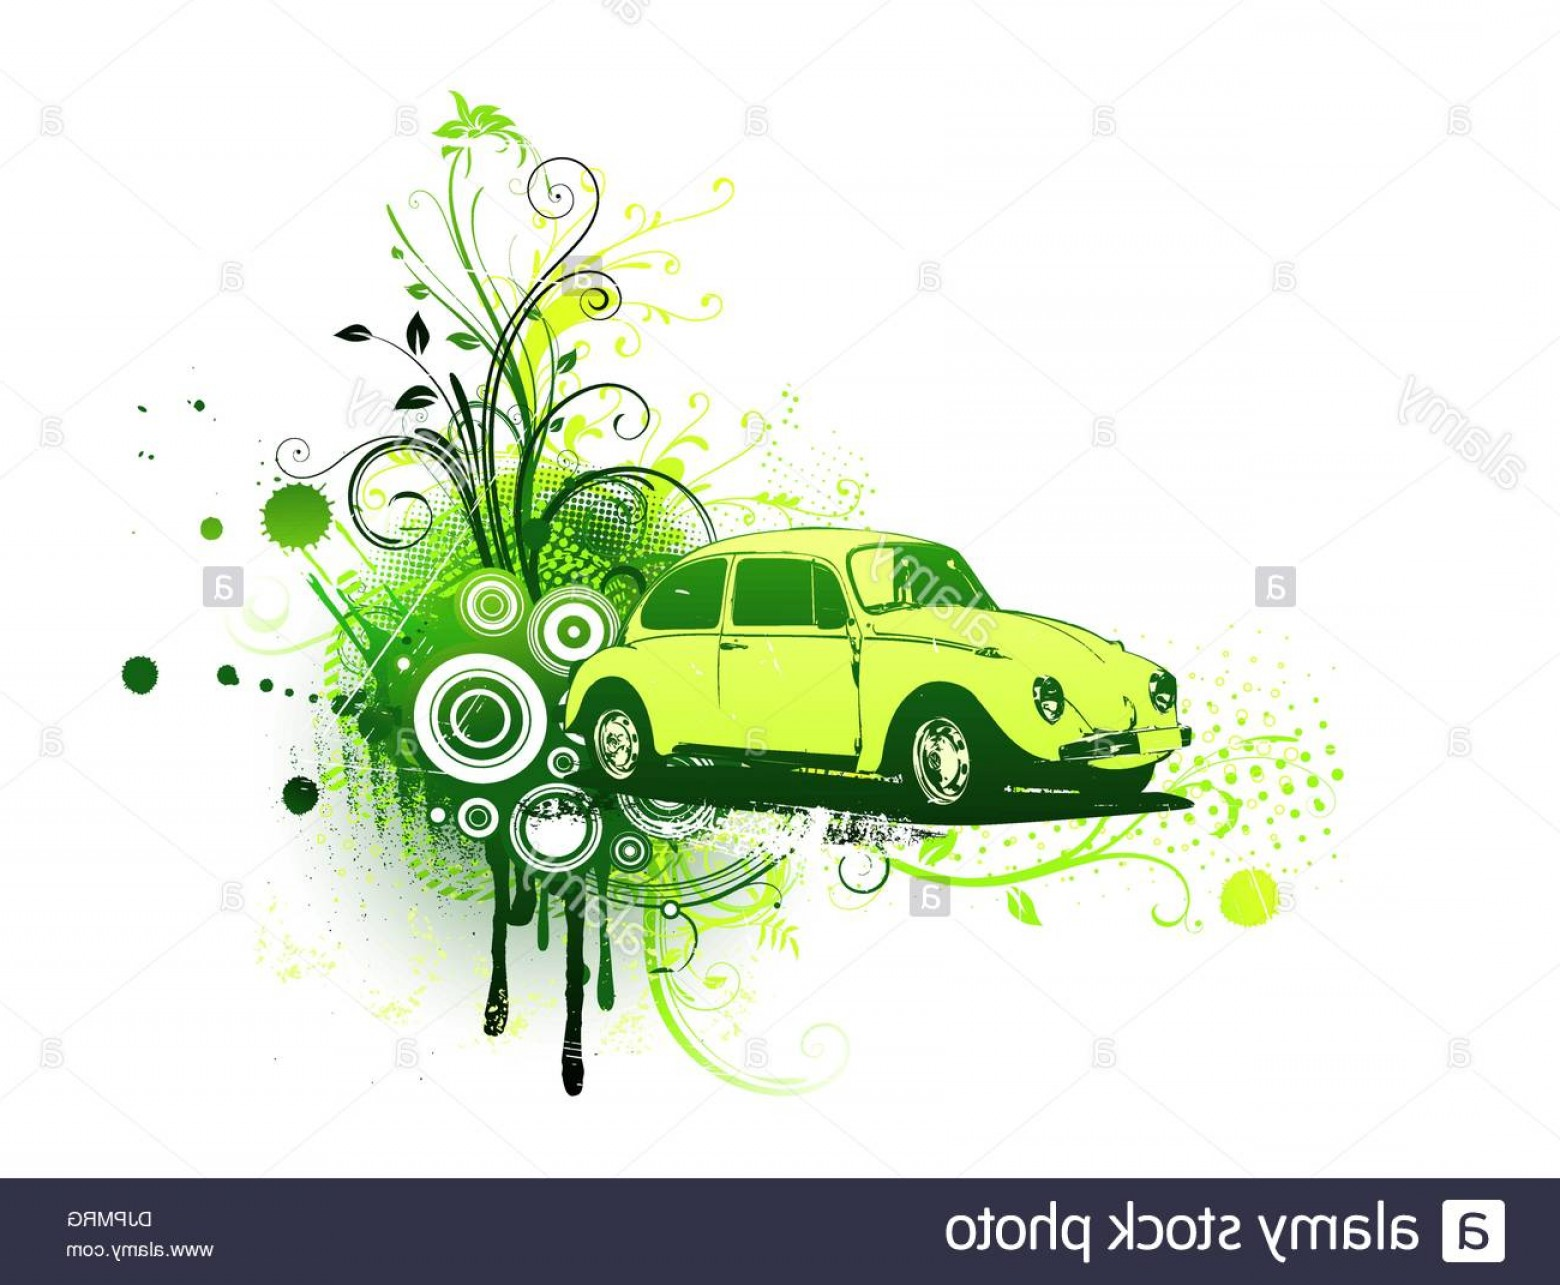 VW Vector Graphic: Stock Photo Vector Illustration Of Old Green Custom Volkswagen Beatle On The Grunge